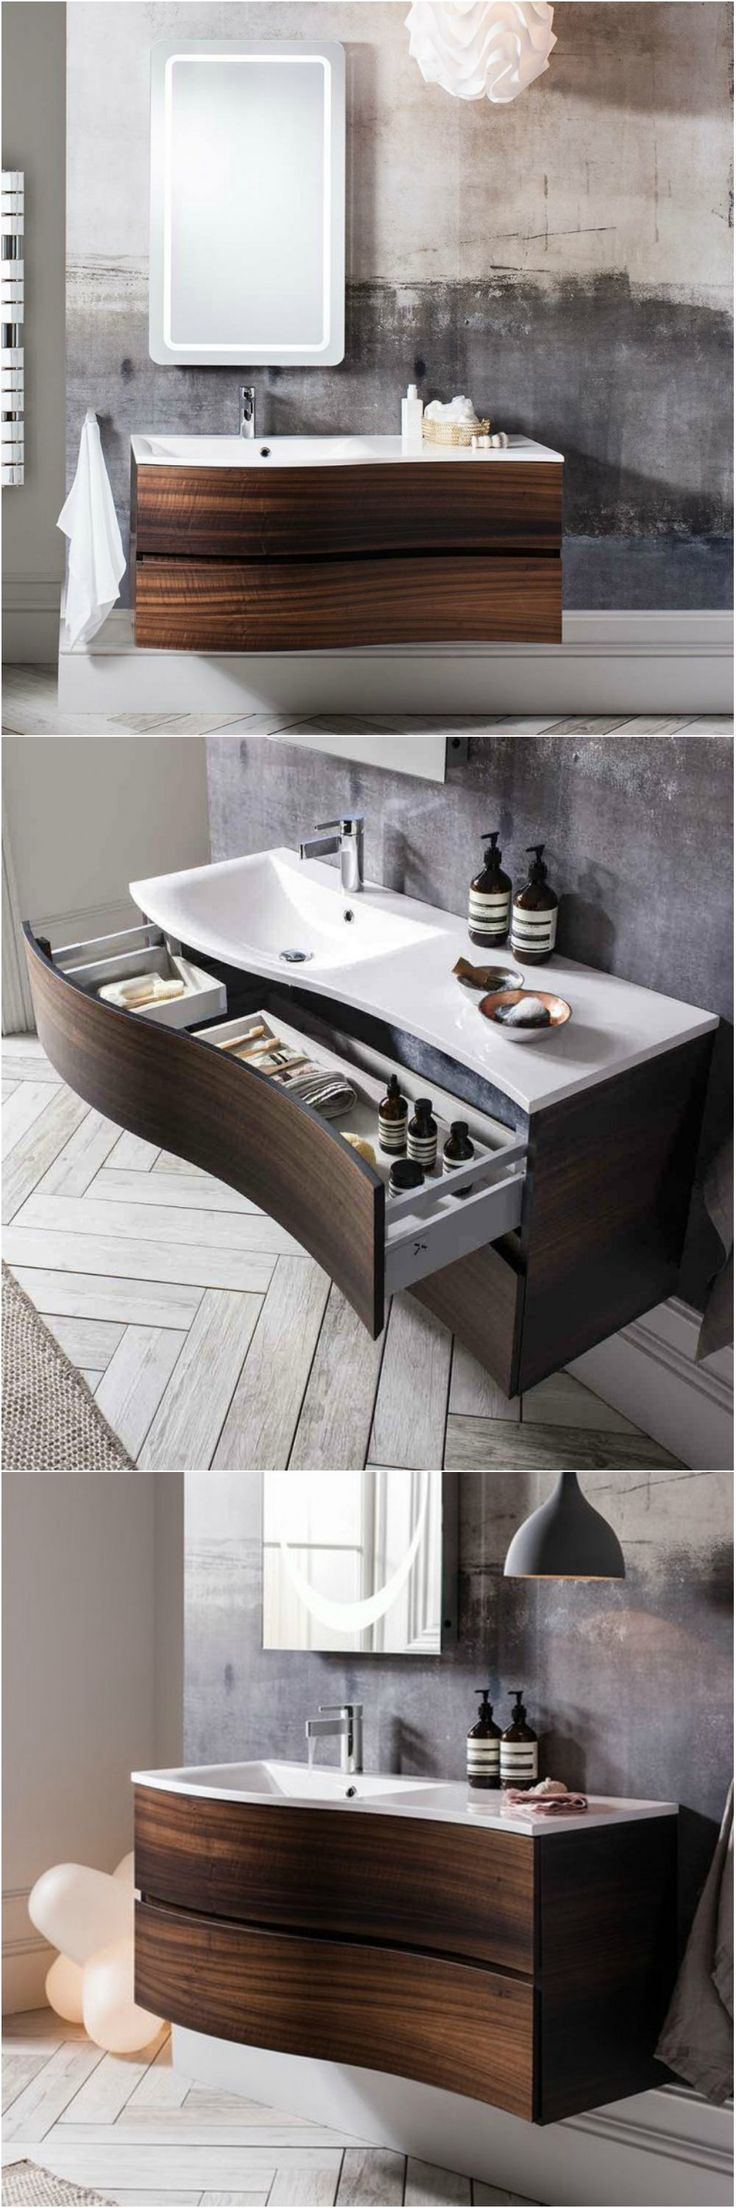 Add A Look And Feel Of Luxury To Your Bathroom With This Handleless Unit  From Bauhaus